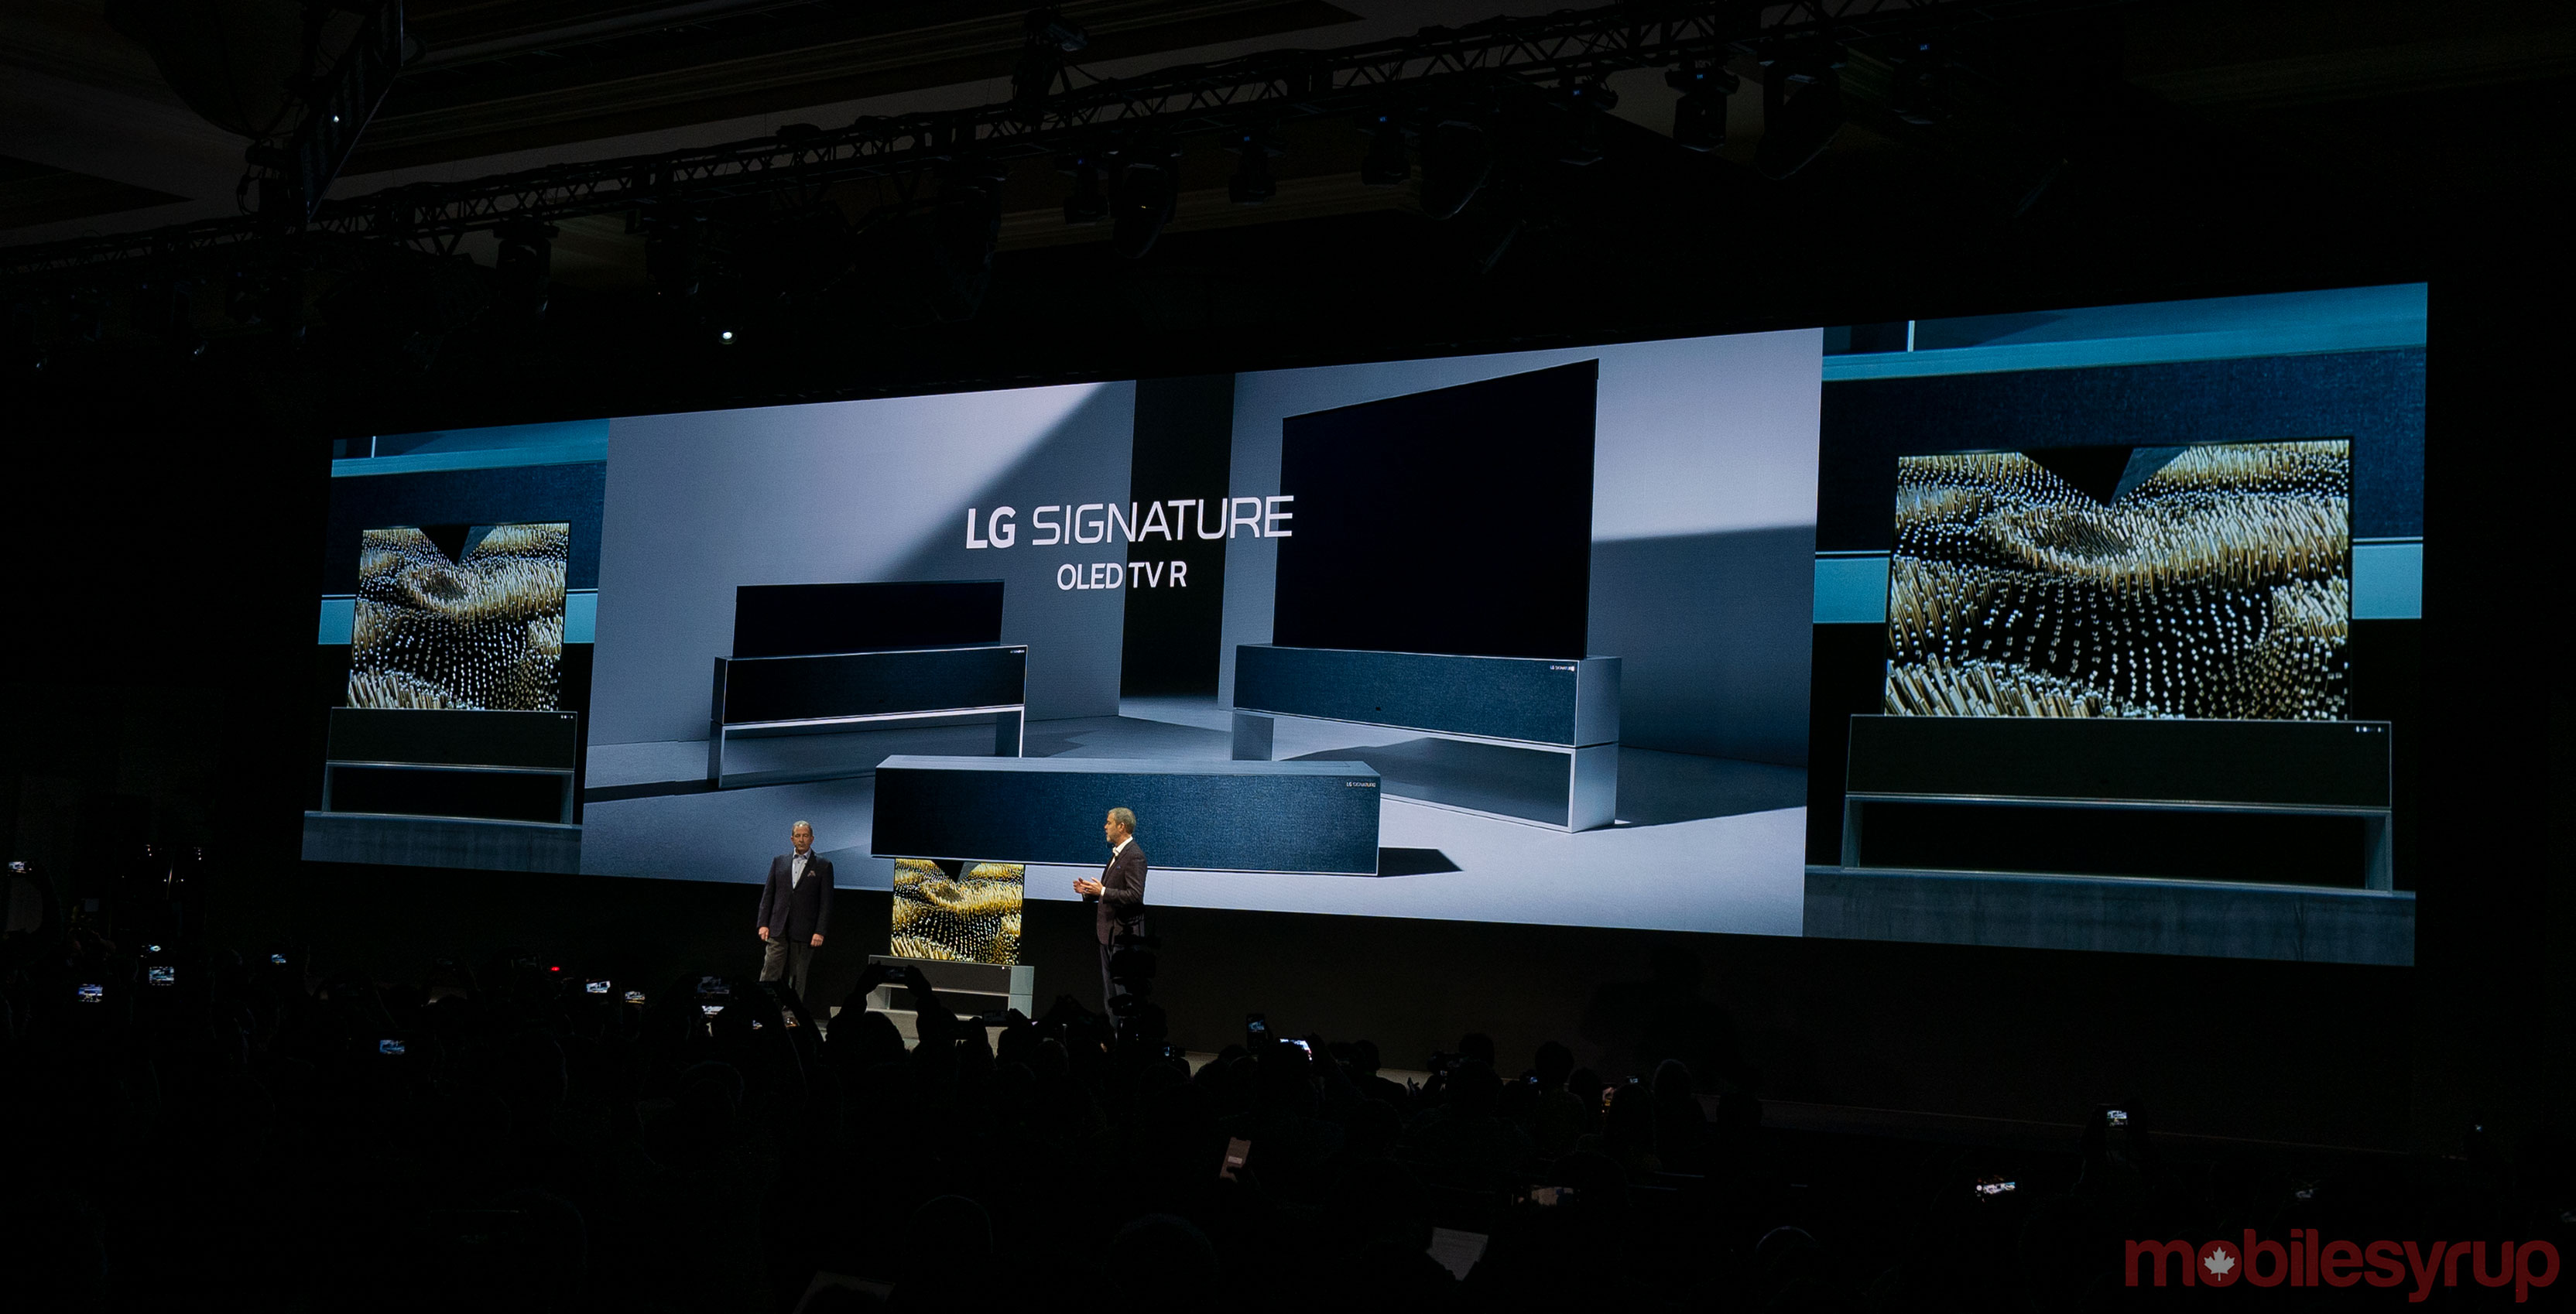 LG Unveils Rollable OLED TV, Announces AirPlay 2 Support at CES 2019